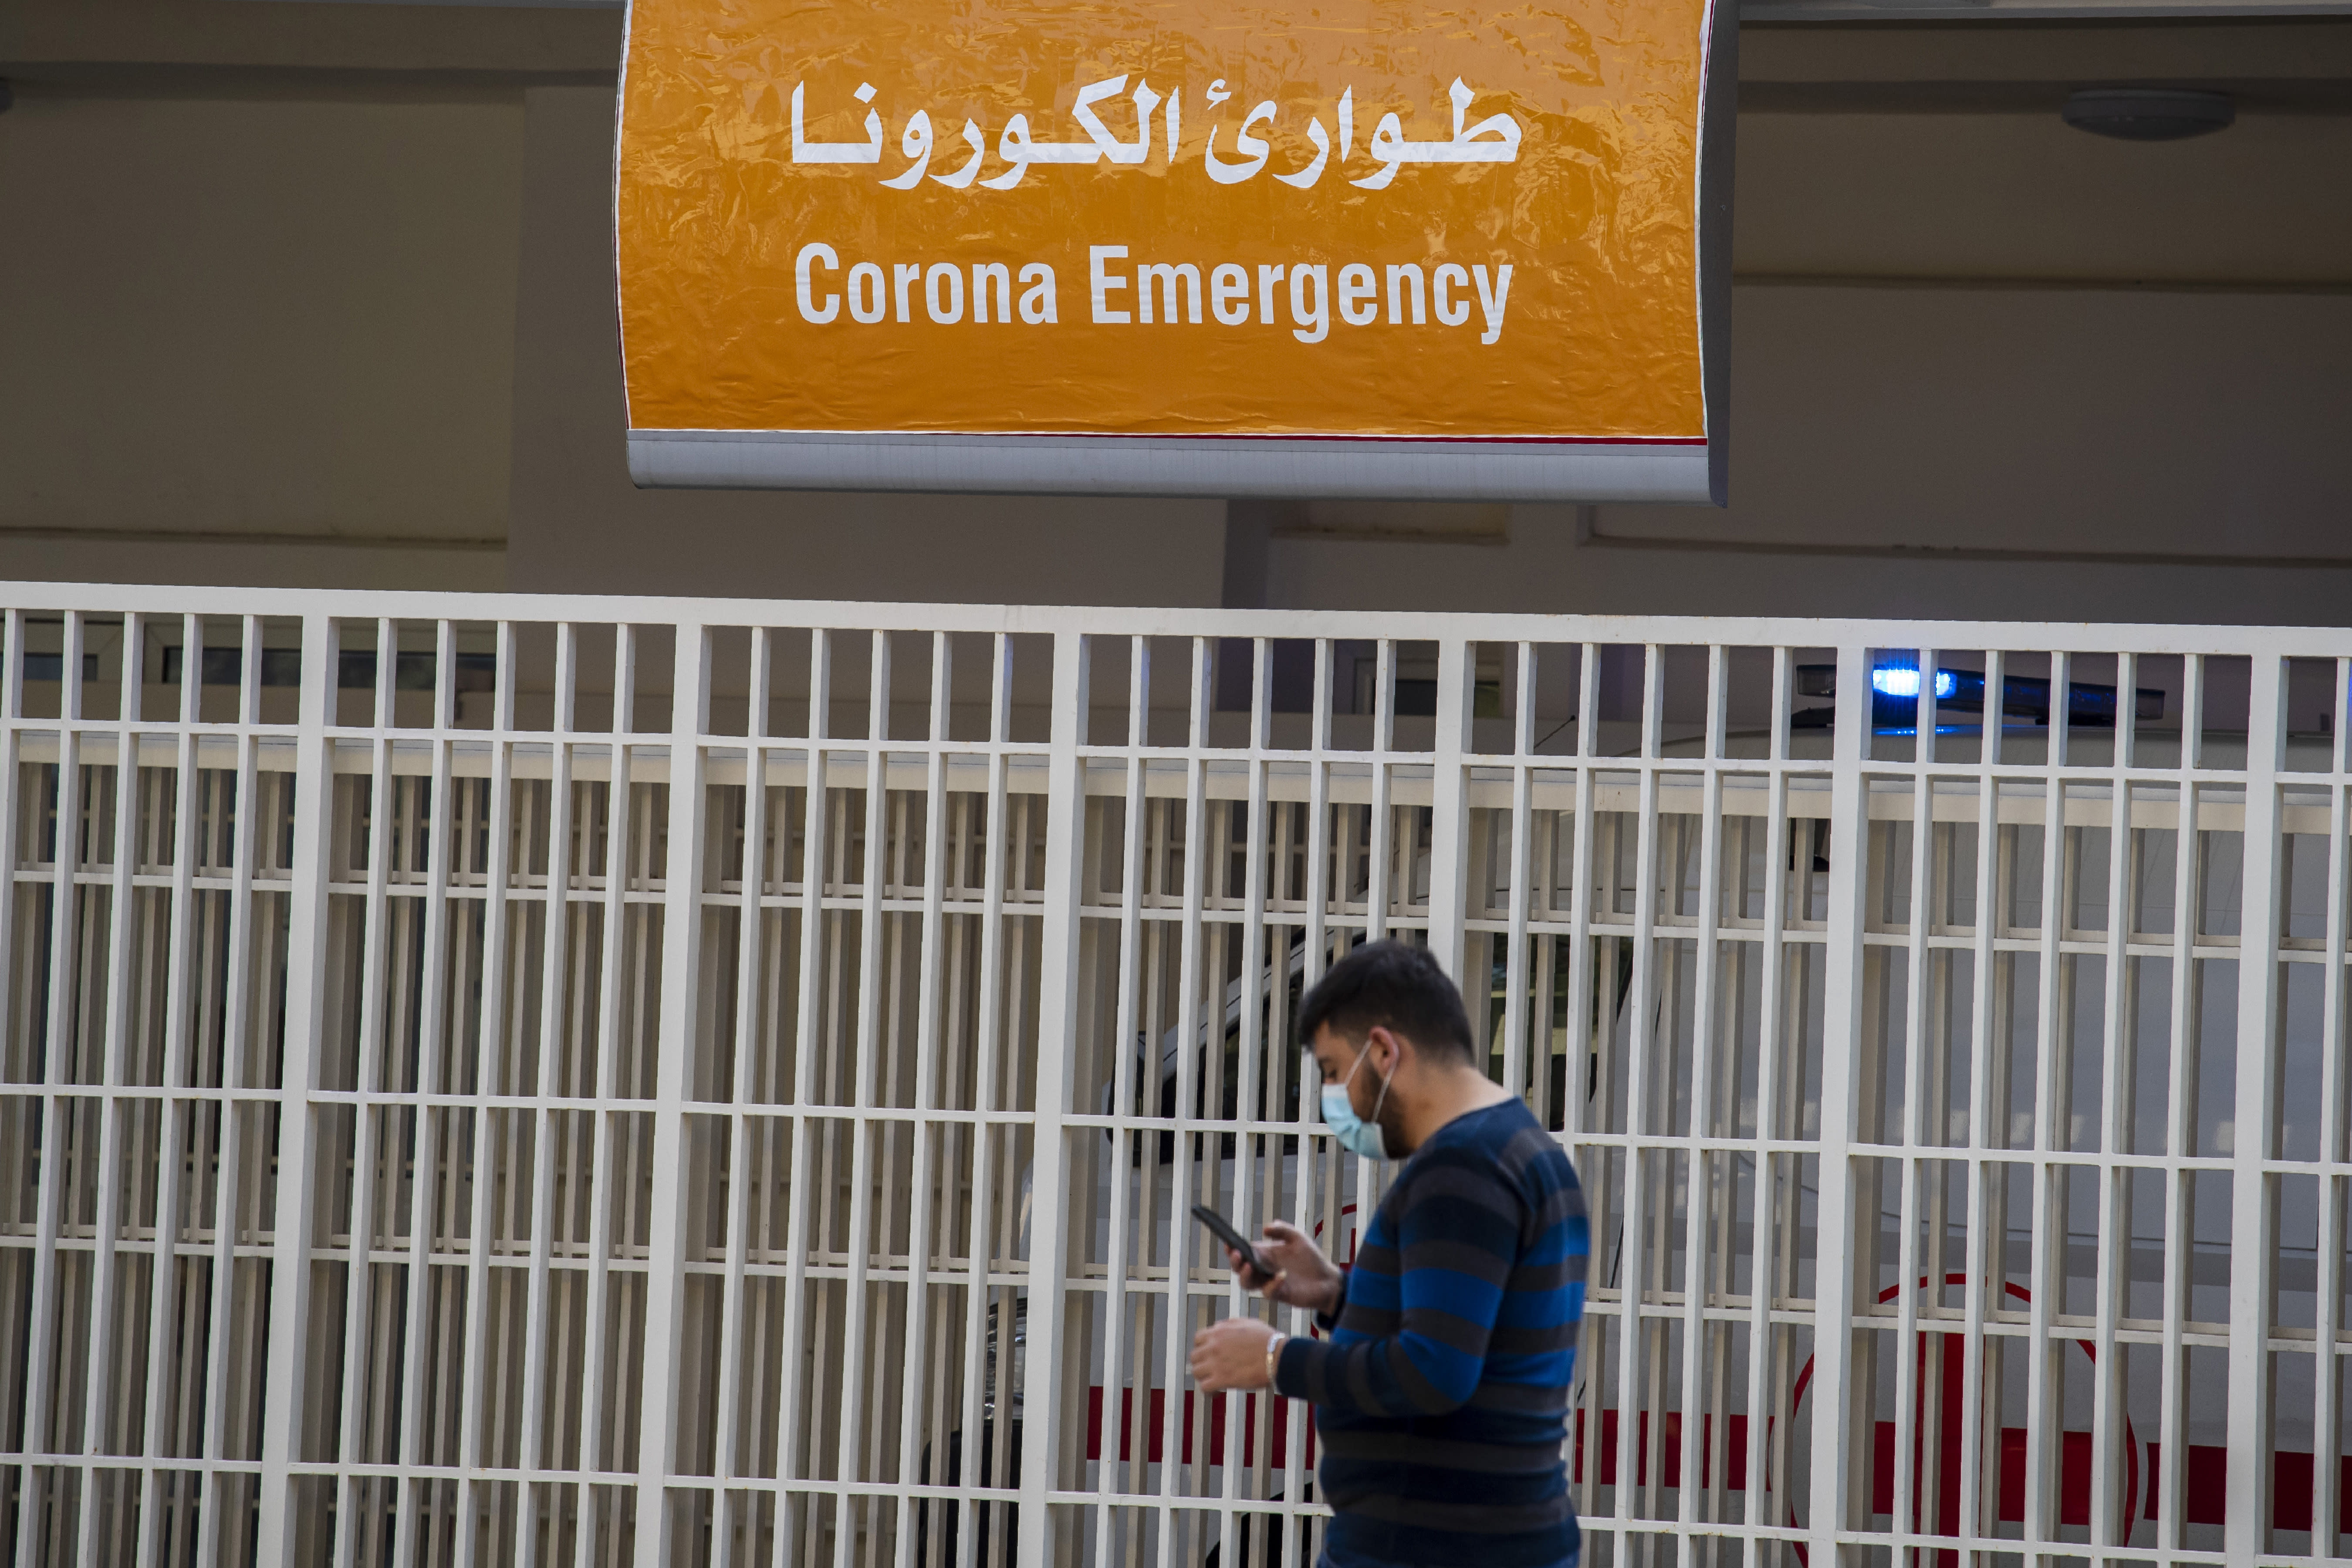 A man wears a mask as he checks his mobile phone while passing the emergency entrance of the government-run Rafik Hariri University Hospital where most of the Lebanese coronavirus cases are treated in Beirut, Lebanon, Thursday, March 26, 2020. The new coronavirus causes mild or moderate symptoms for most people, but for some, especially older adults and people with existing health problems, it can cause more severe illness or death. (AP Photo/Hassan Ammar)